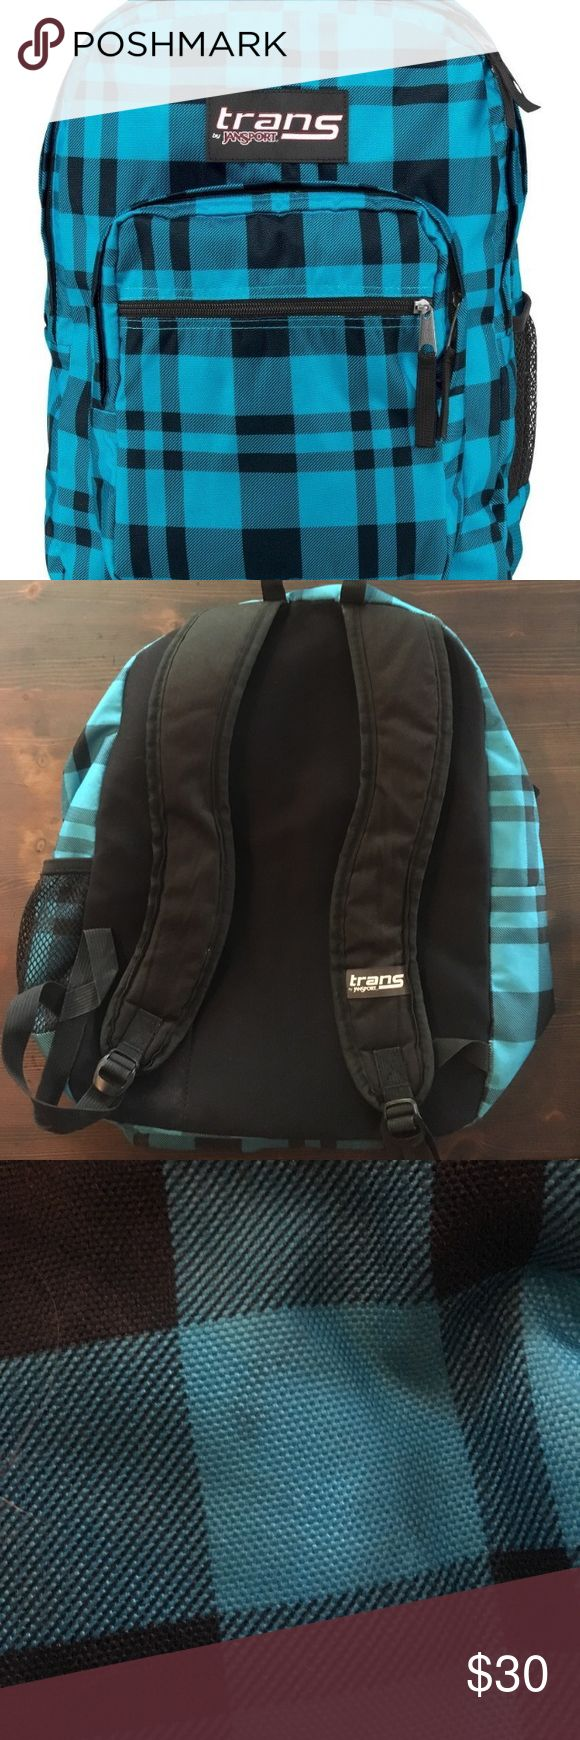 Blue plaid Trans Jansport Backpack Great condition just is a little worn on the bottom with a stain has four pockets has just a few stains shown in pics that I can easily clean once purchased only used less than a year no trading Jansport Bags Backpacks